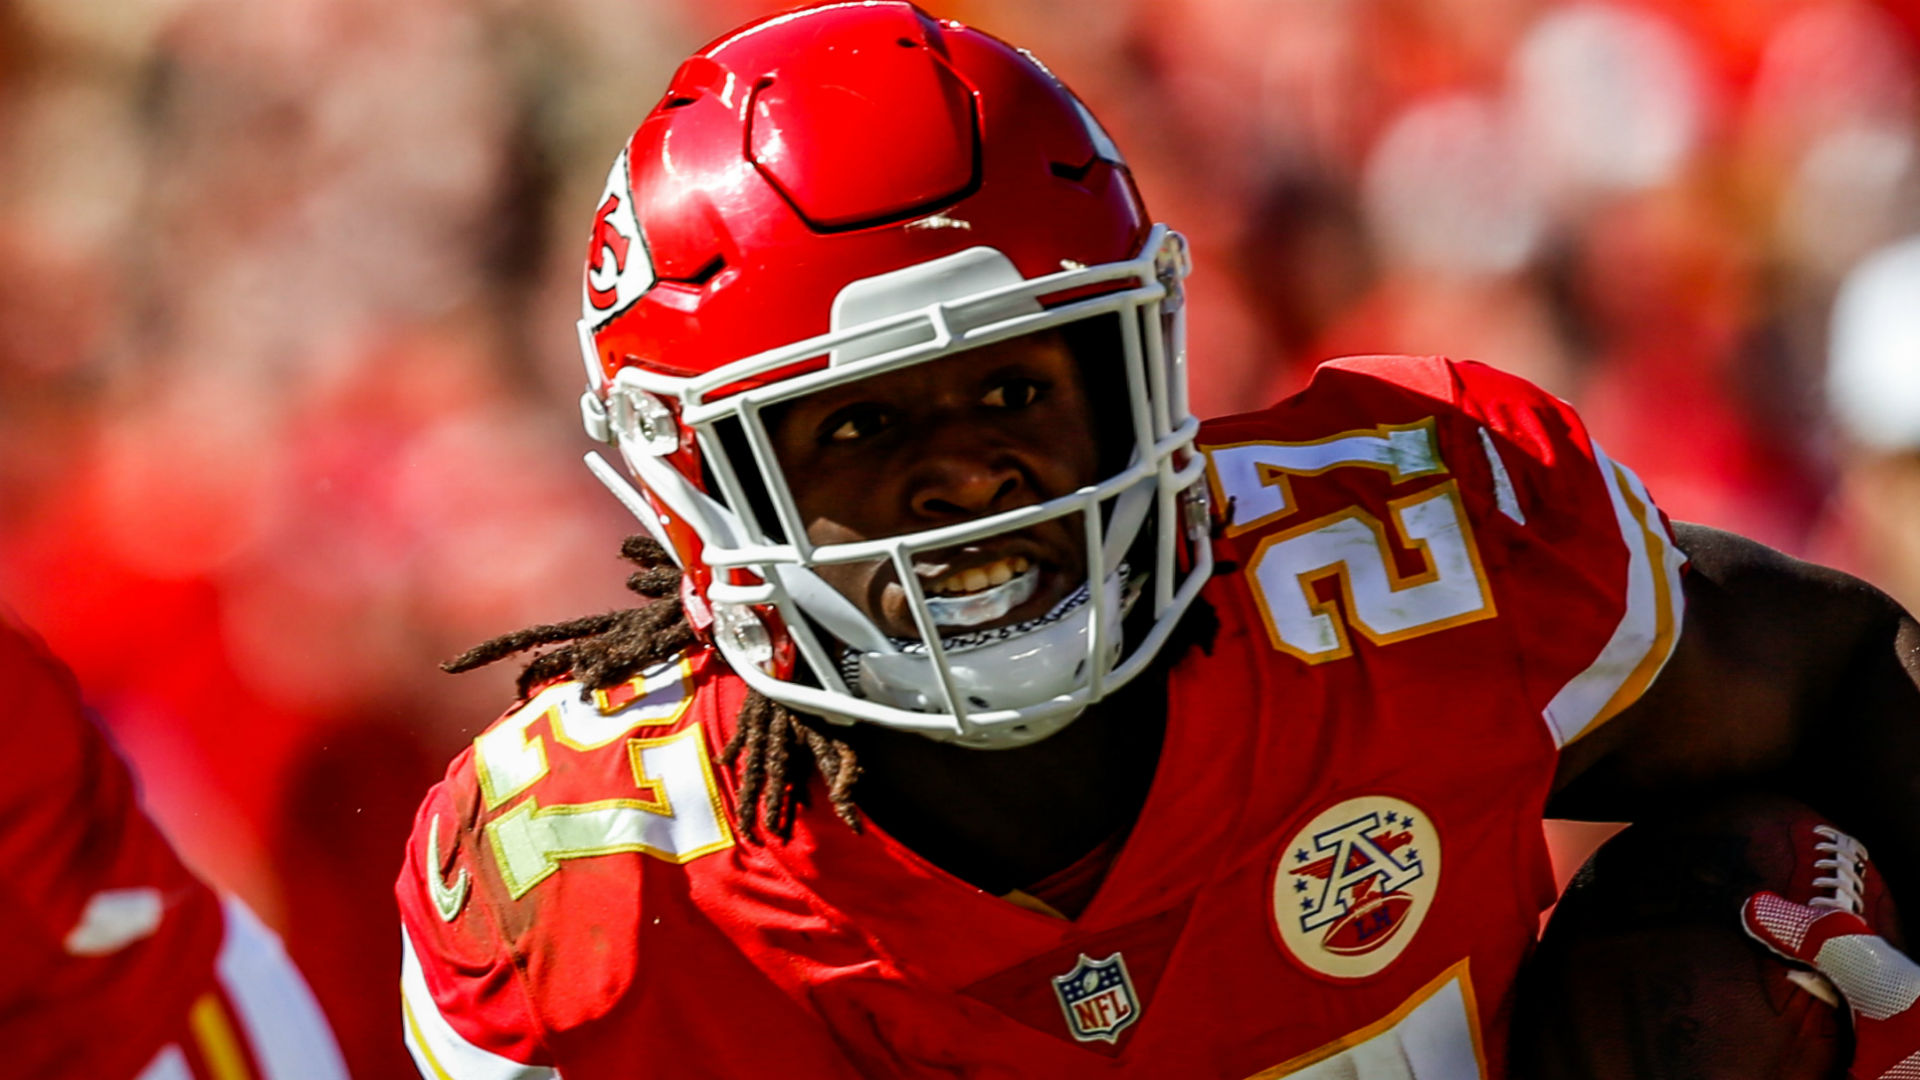 Patrick Mahomes addresses Kareem Hunt after Chiefs win